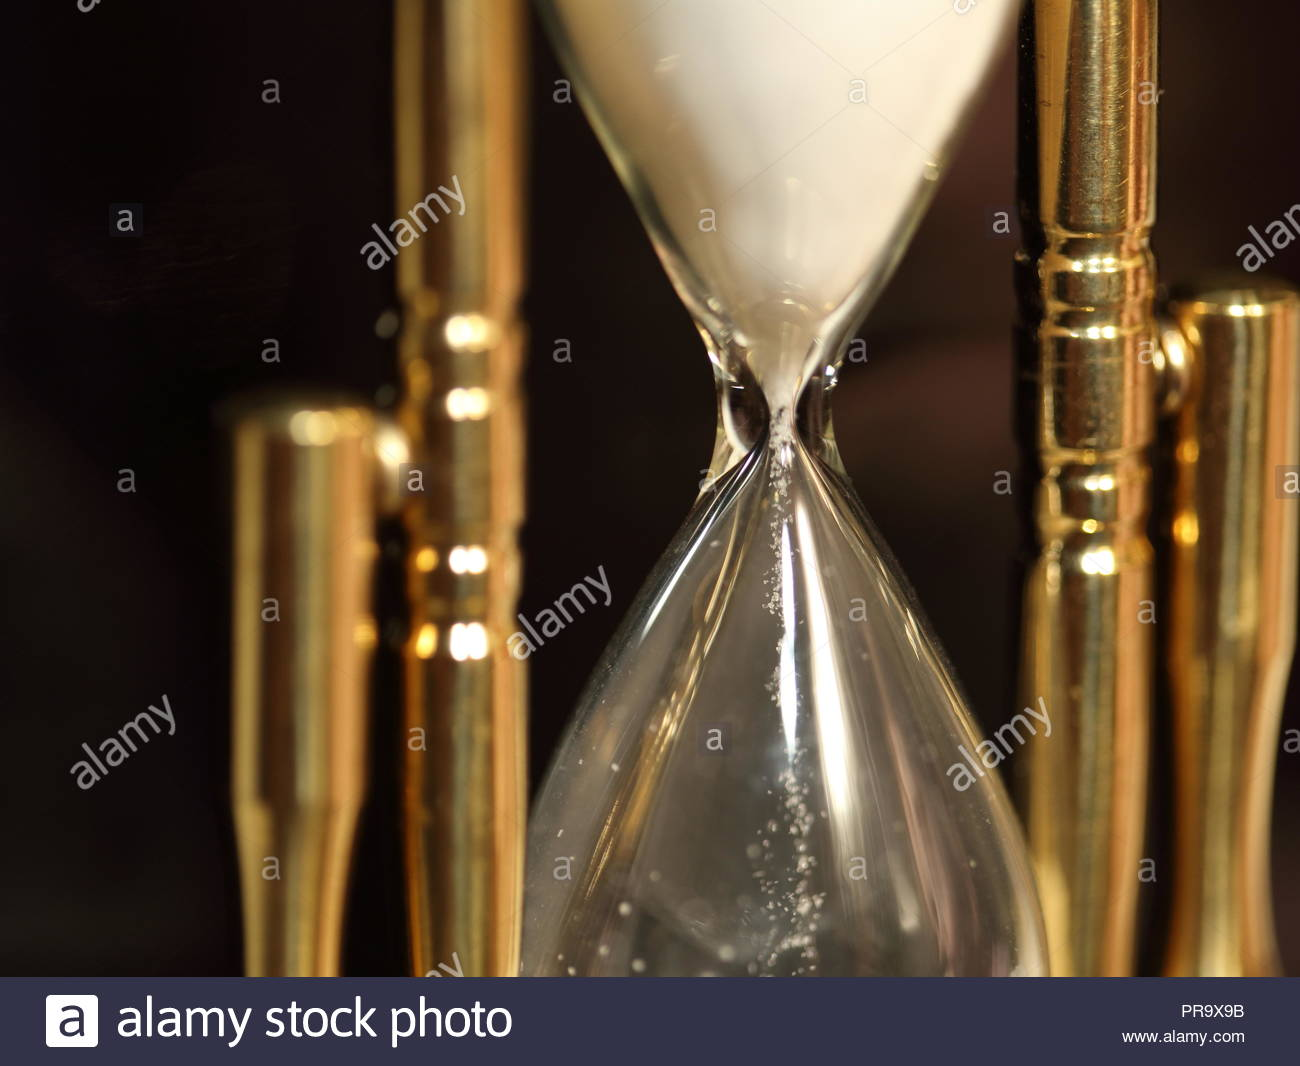 V POINT OF THE HOUR GLASS - Sand slipping through the hour glass. - Stock Image